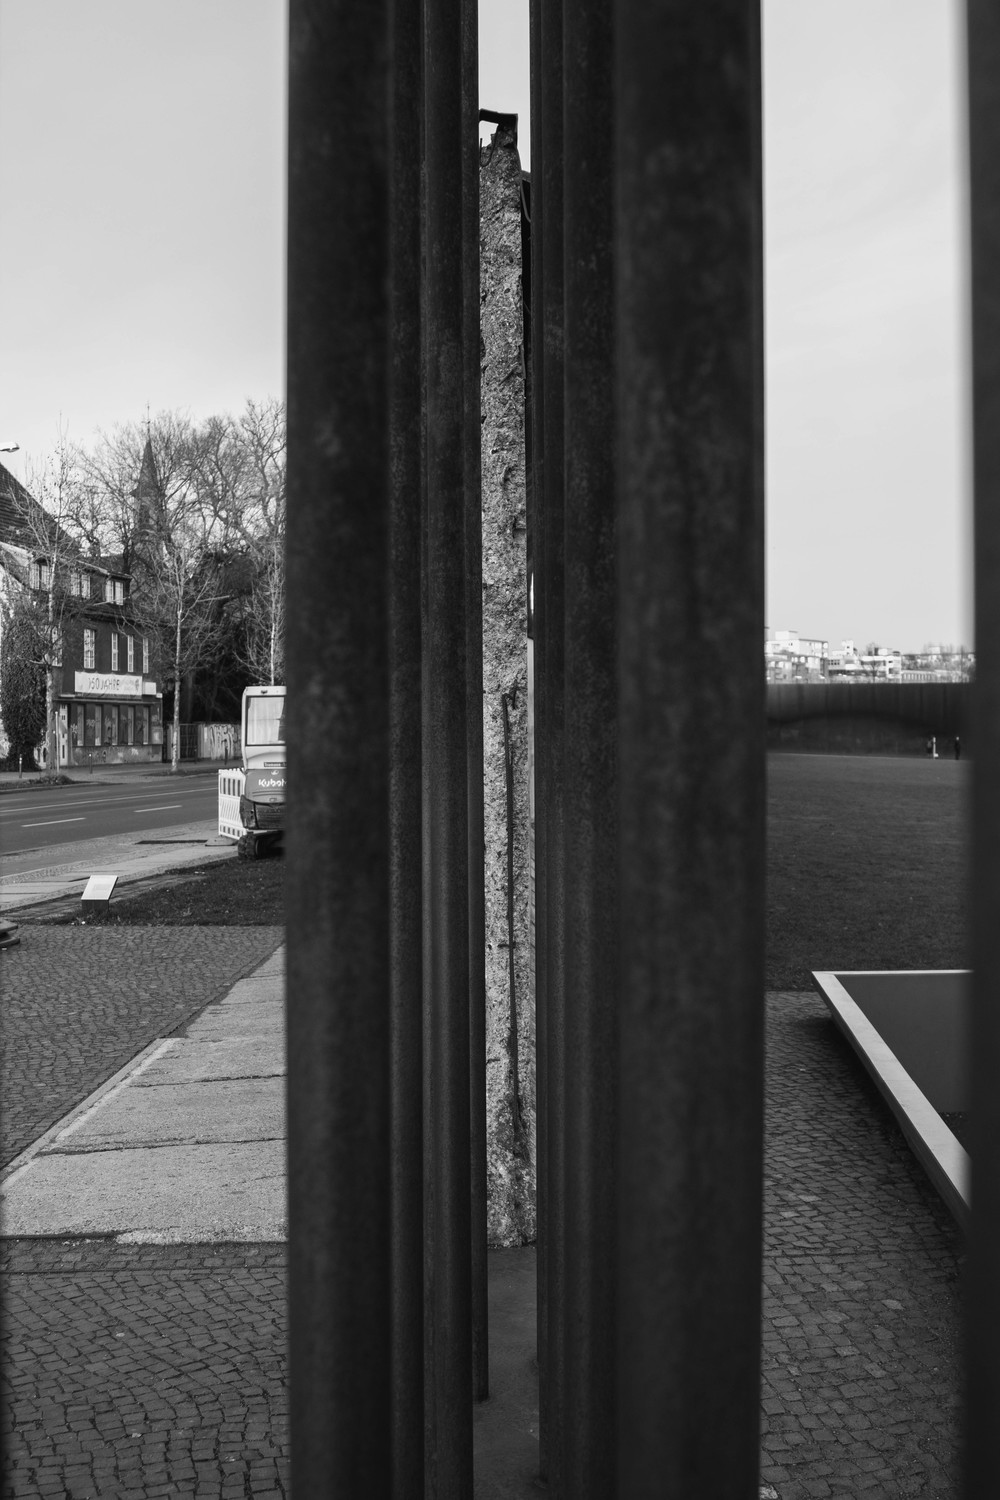 Wall Structure - Berlin Wall Memorial Site, Berlin, Germany 03/12/2015